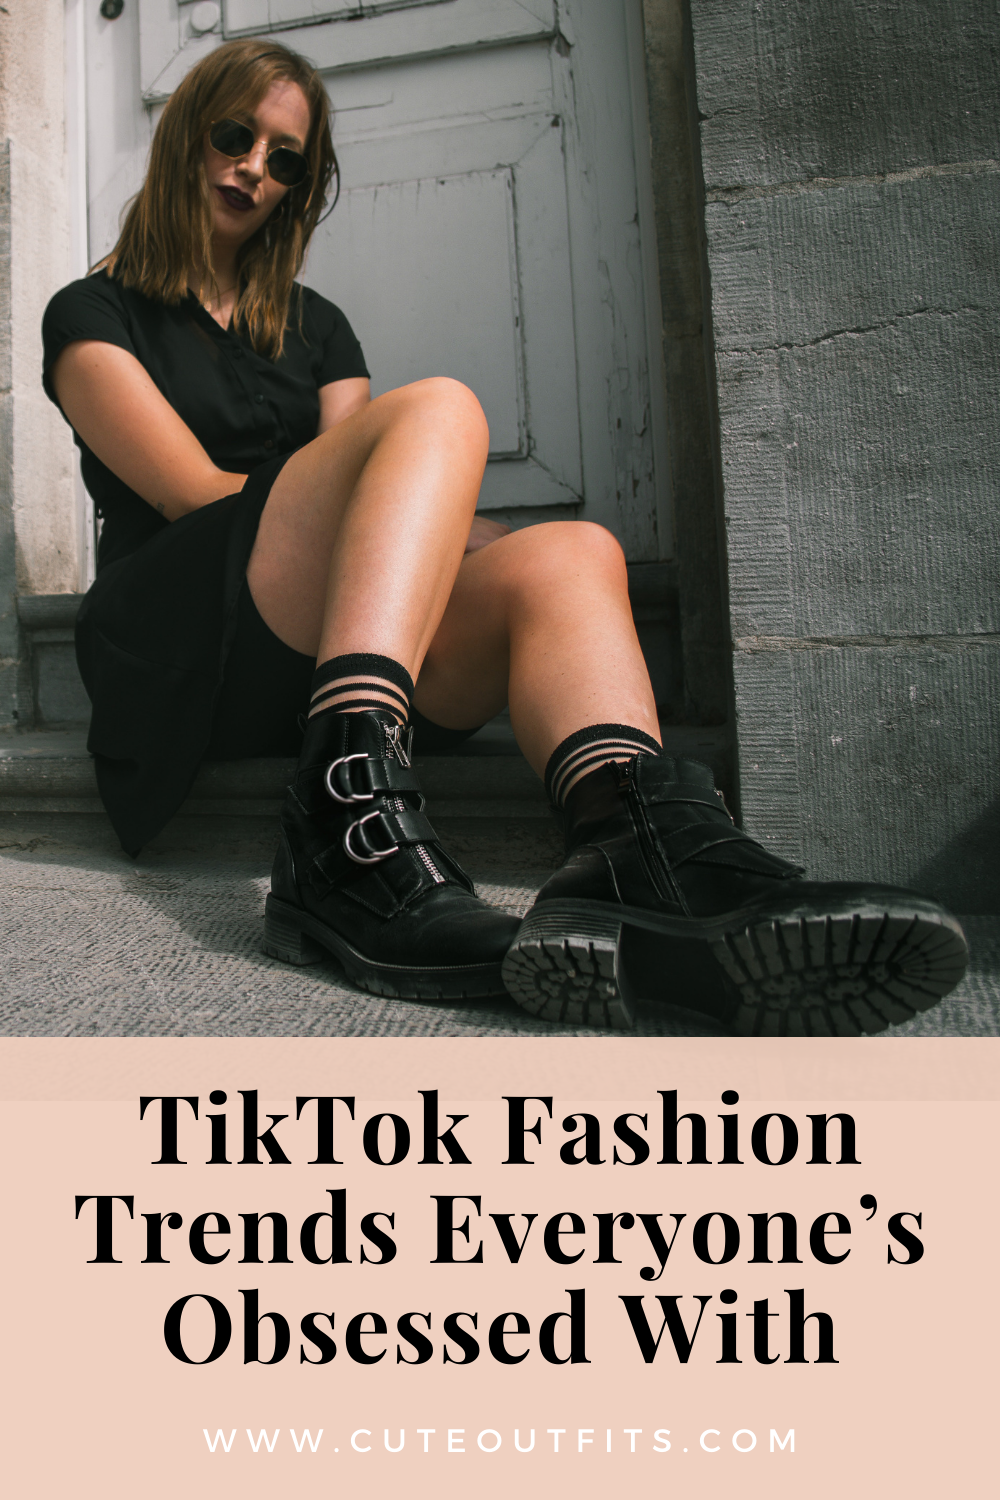 Tiktok Trends Are Usually About The Latest Dance Crazes But This App Also Has A Lot To Offer When It Comes To Fashion H Tiktok Fashion Fashion Gingham Outfit